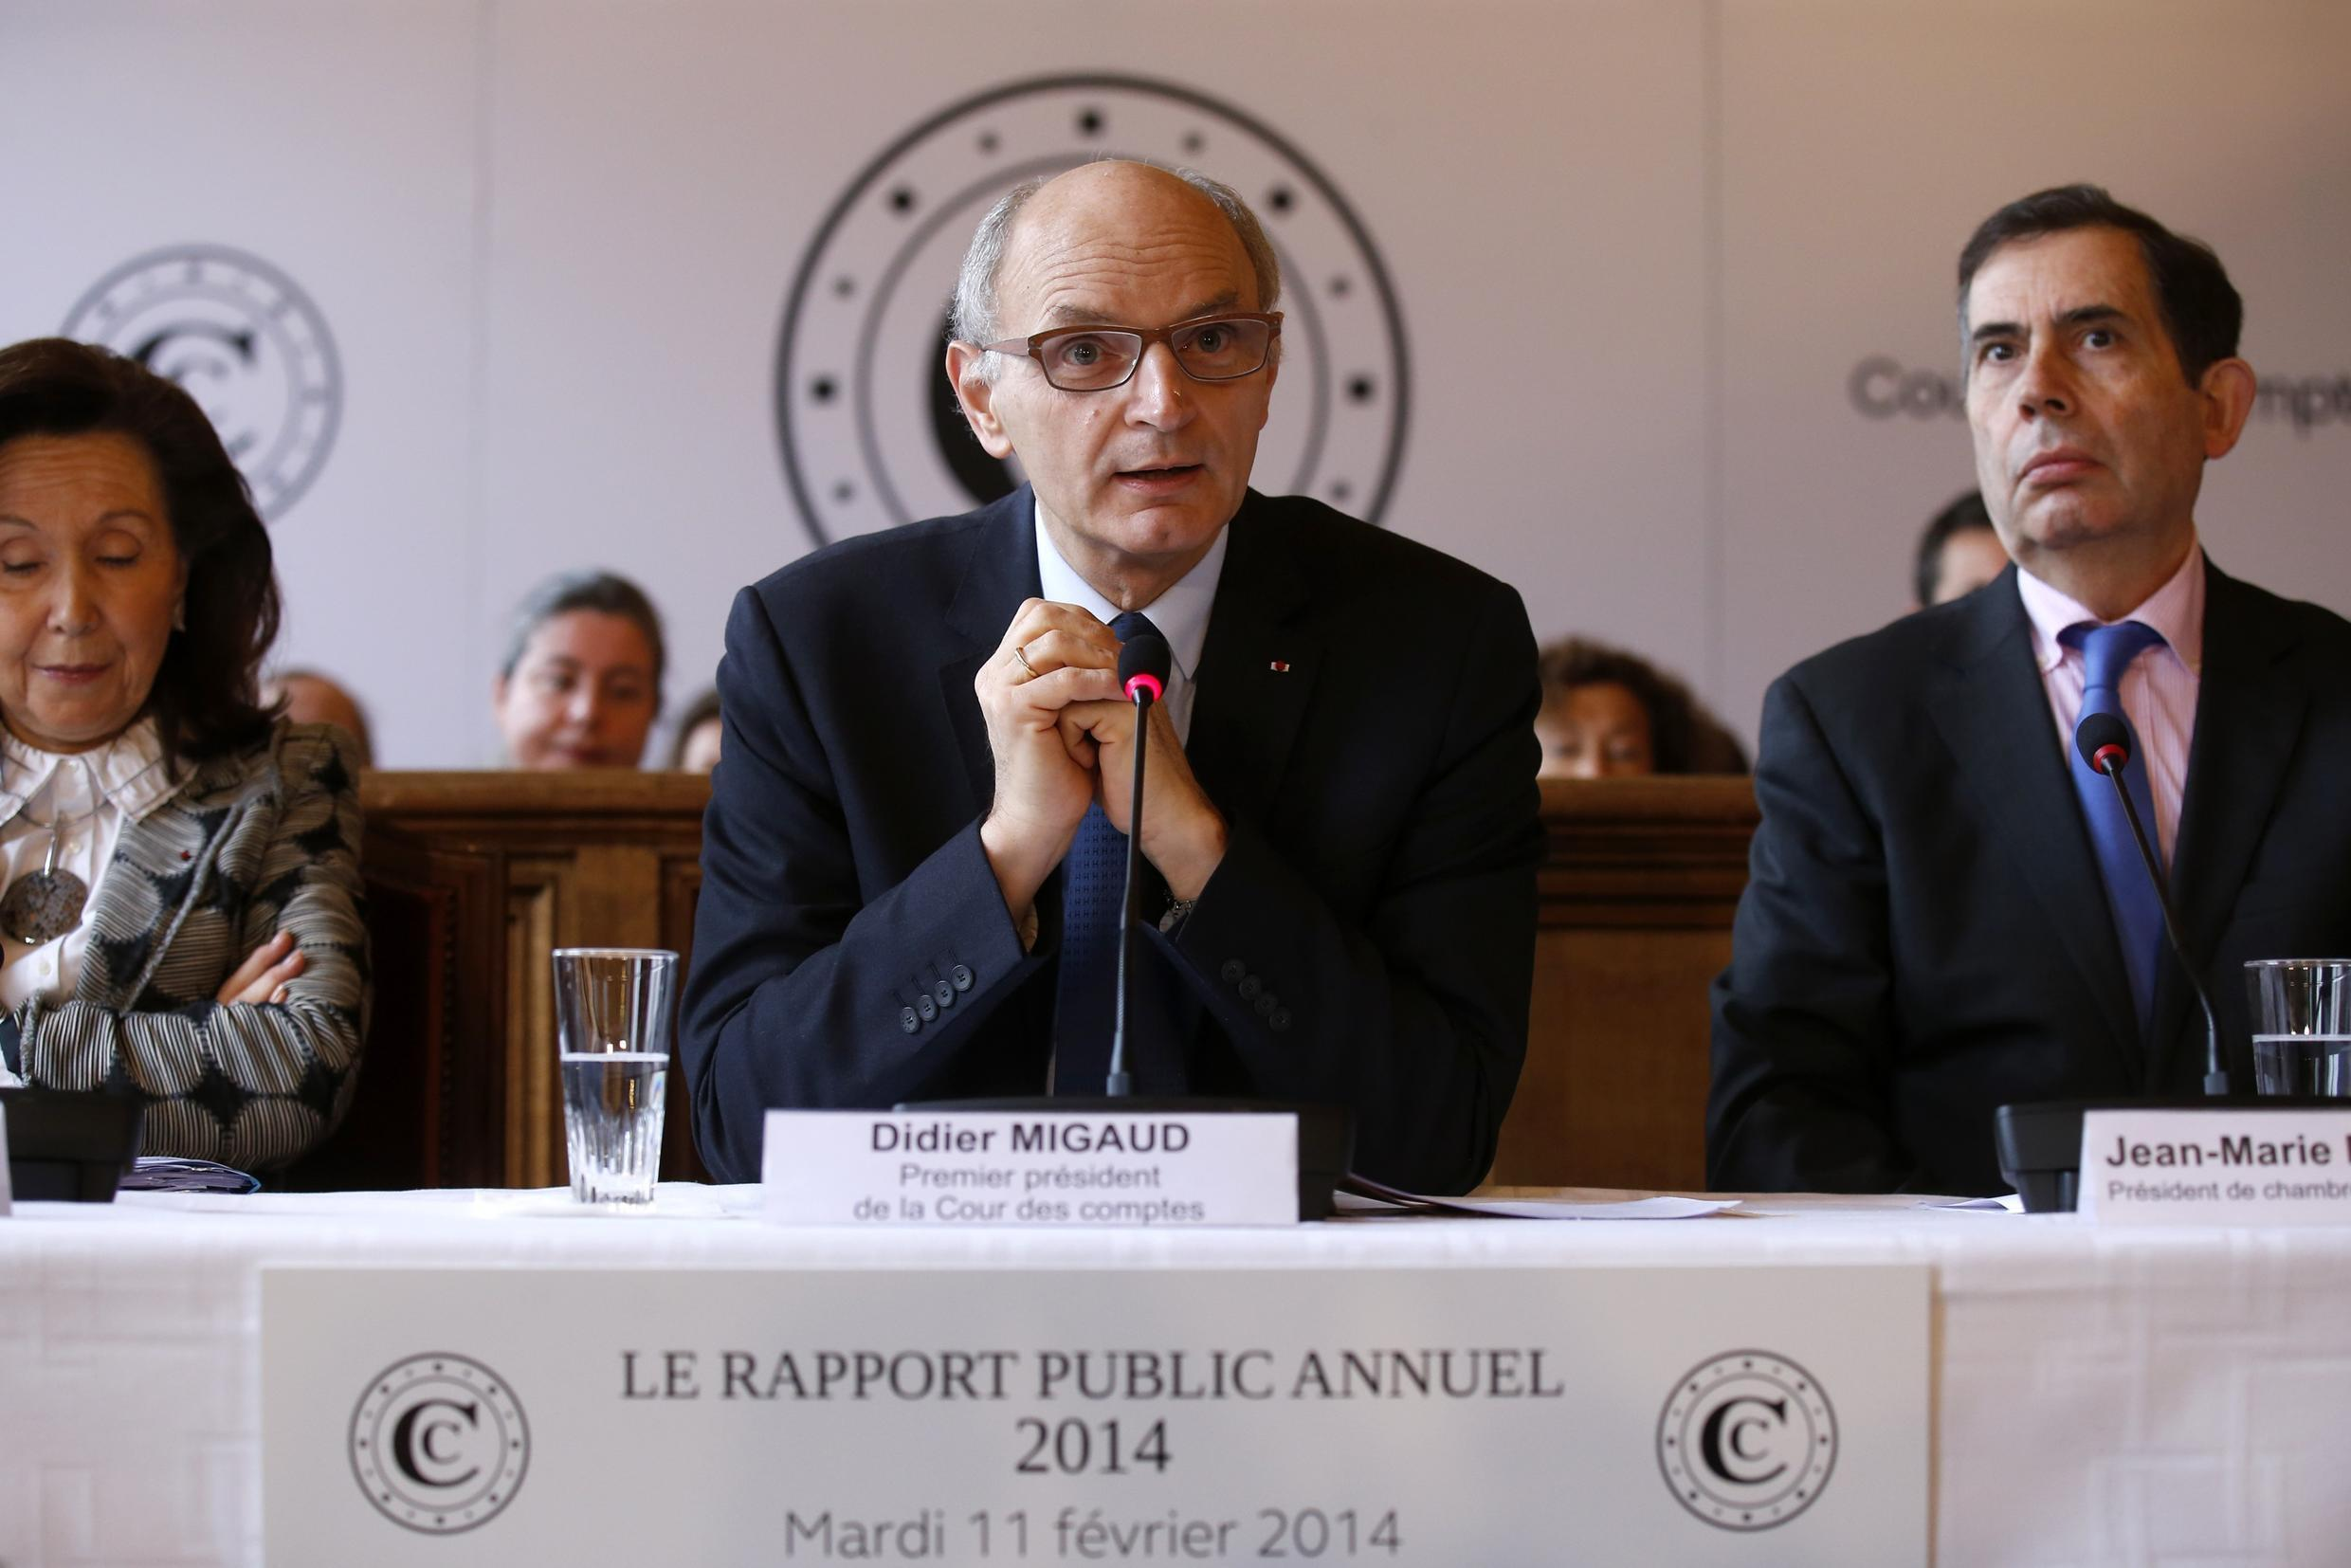 Didier Migaud, President of the French Court of Accounts, presents the annual report of the Court of Auditors in Paris, 11 February 2014.